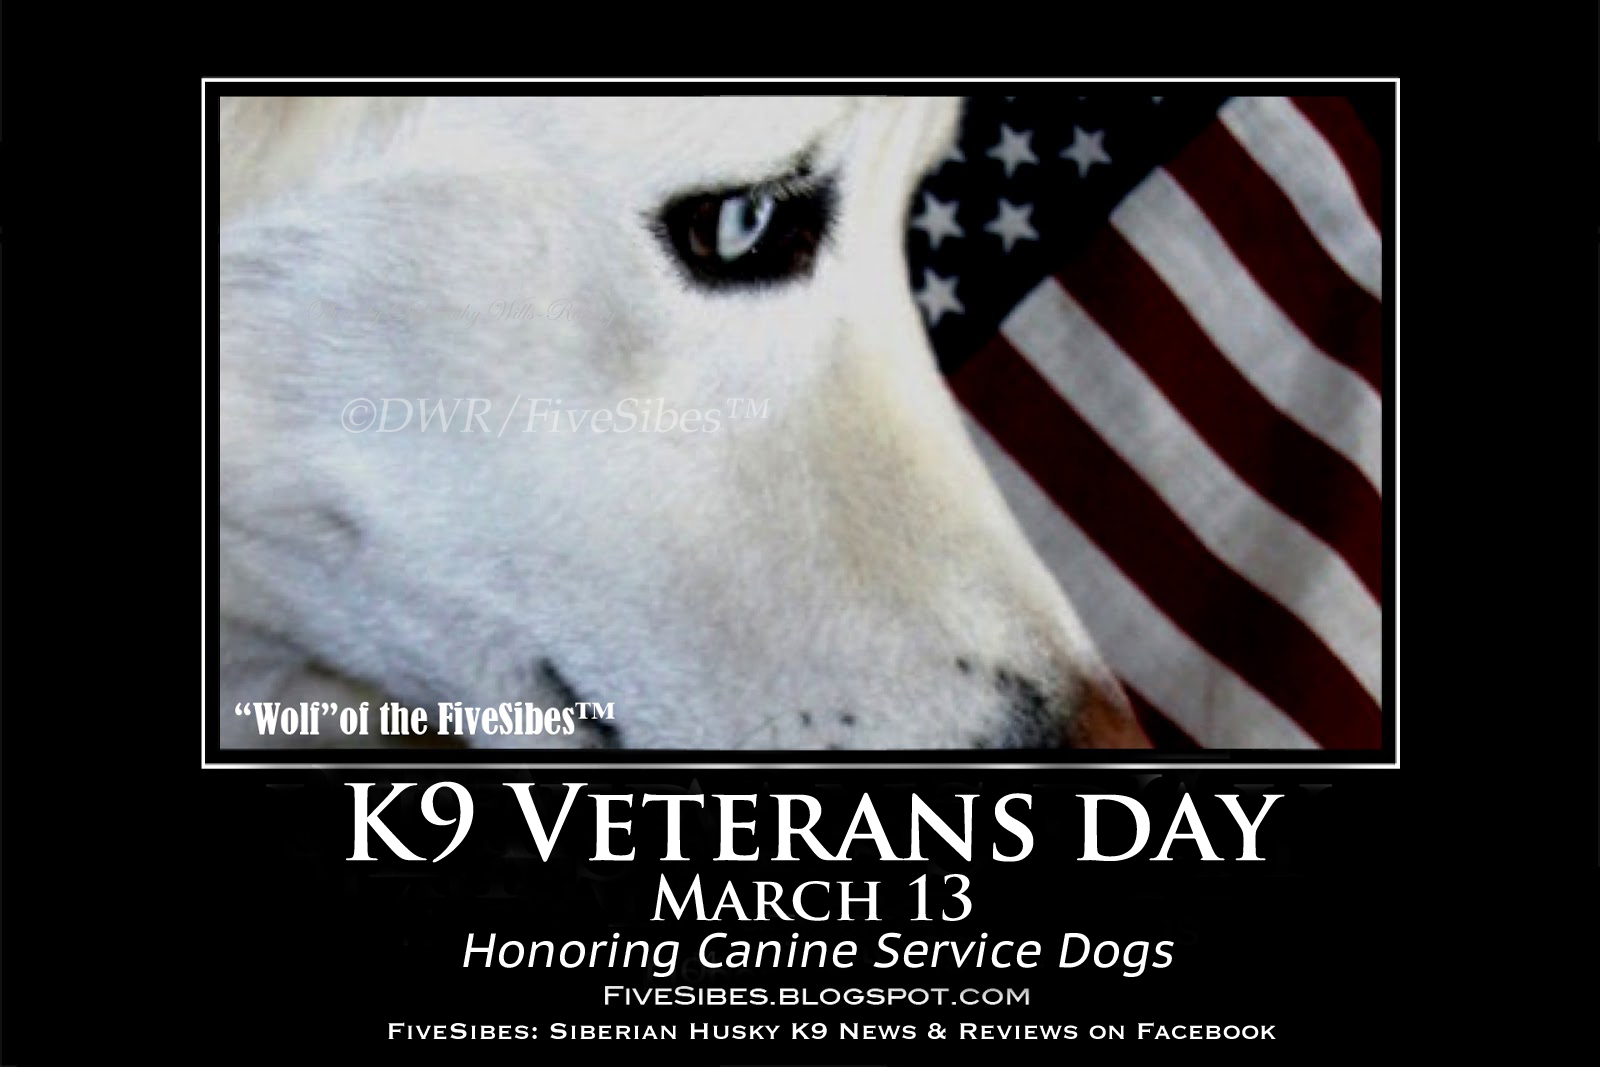 Memorial Day Images With Service Dogs